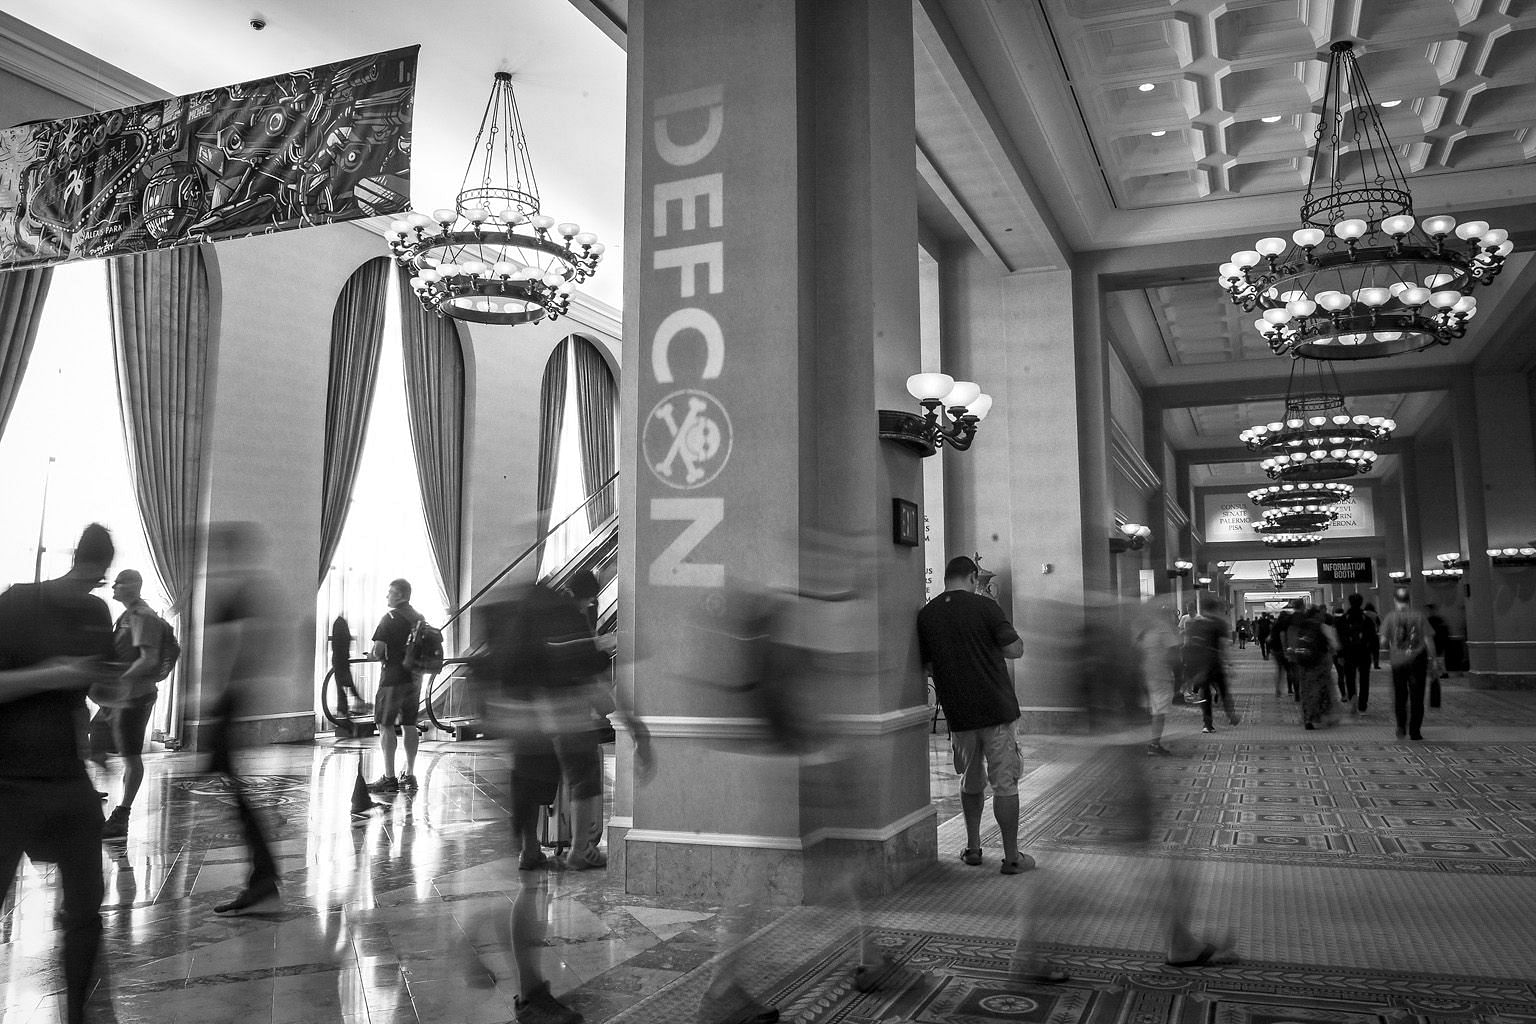 Defcon, one of the world's largest hacking conferences, was held last month in Las Vegas. New pressures are reshaping the hacker community's attitudes towards privacy and anonymity.